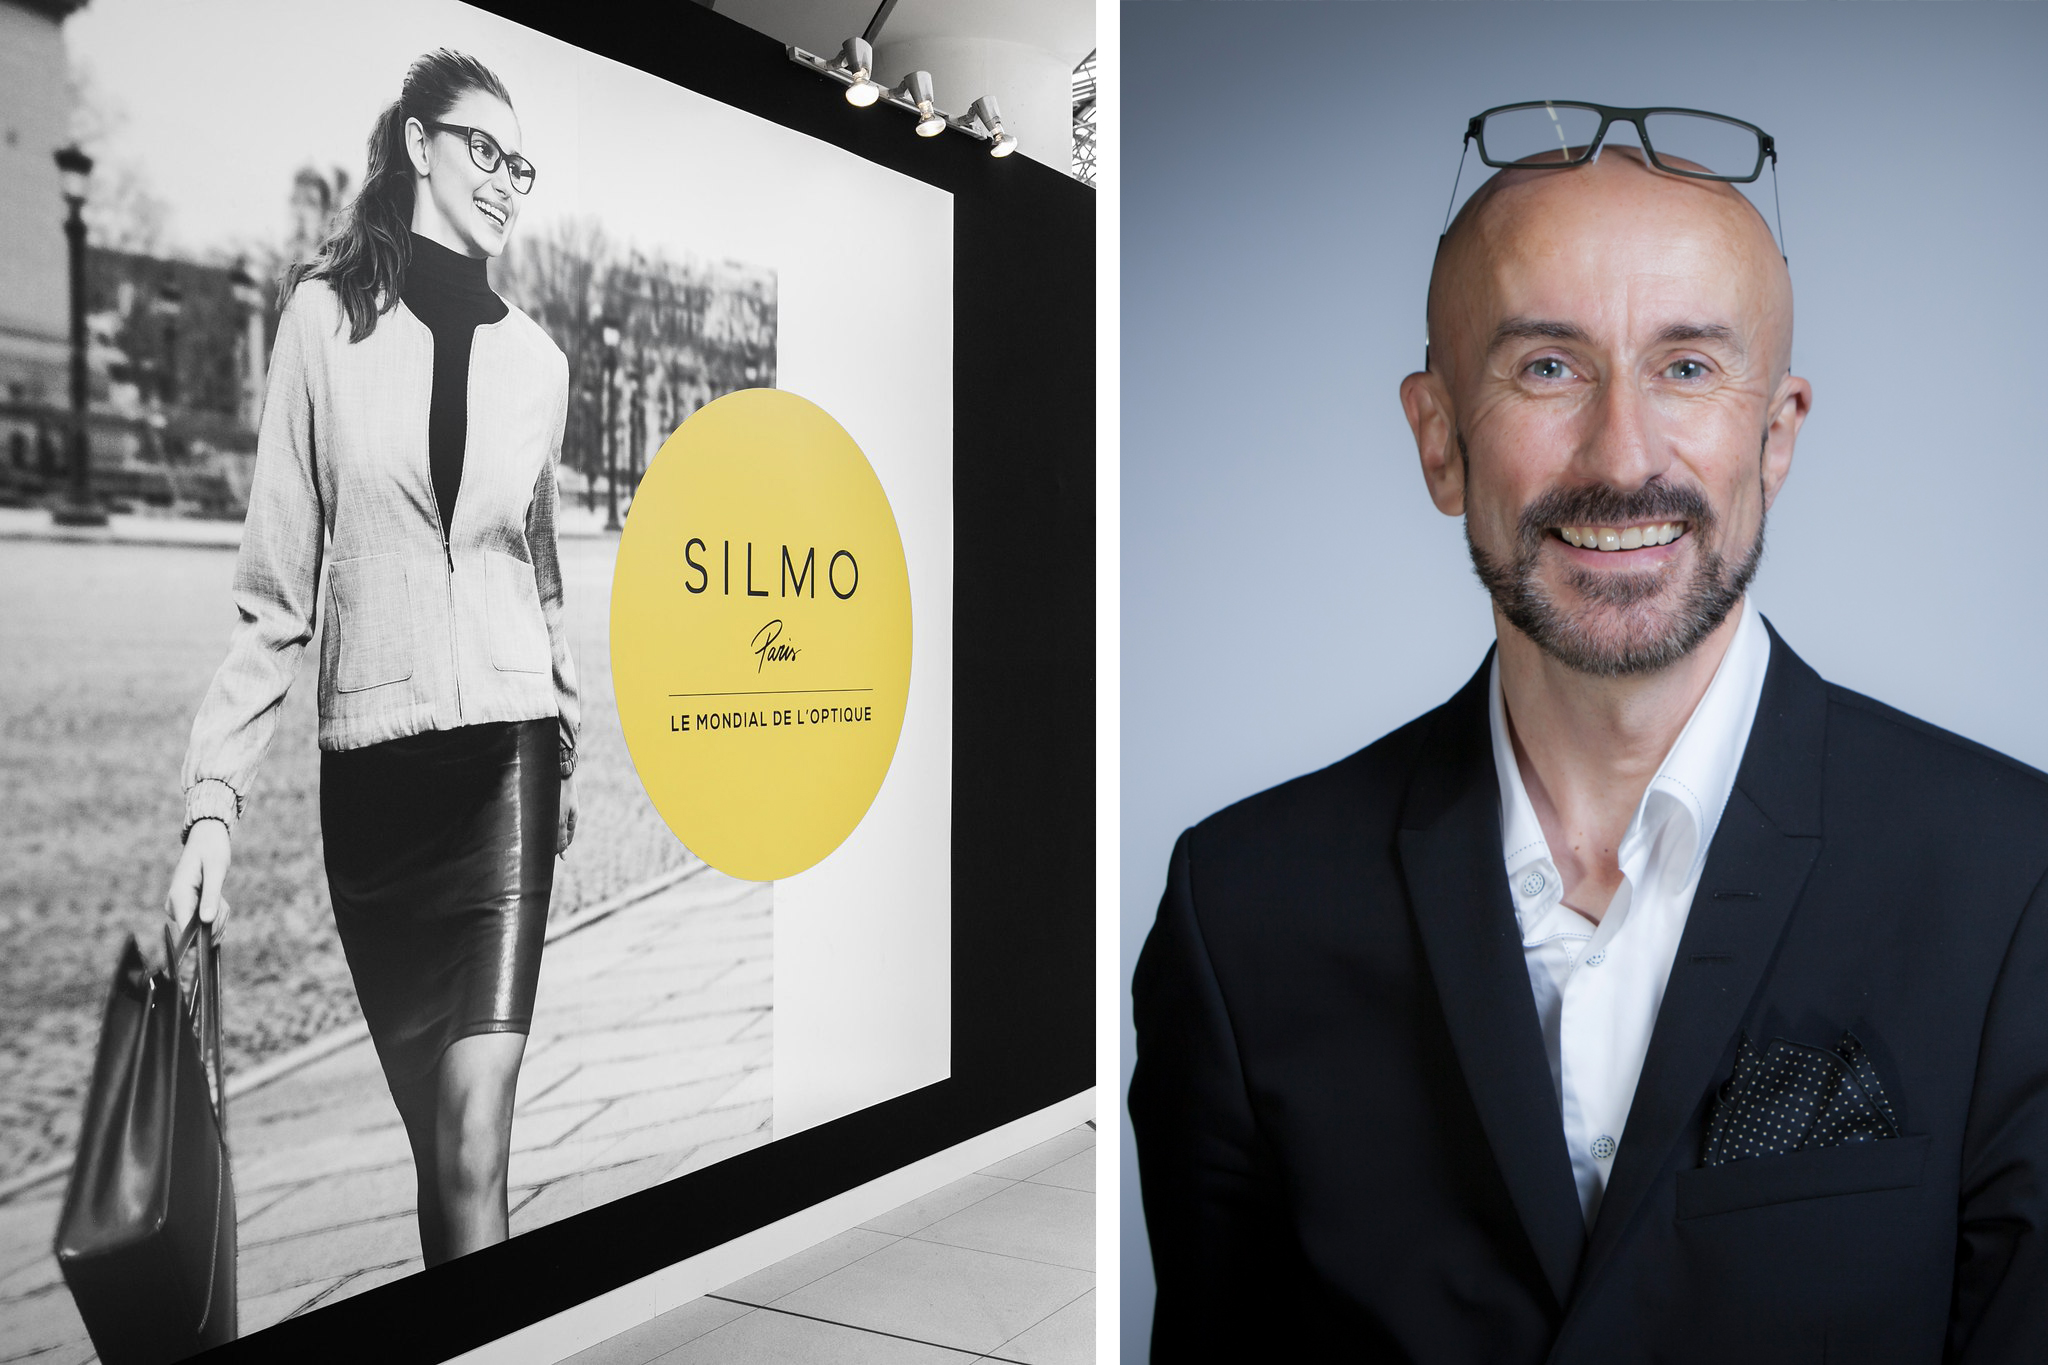 Dominique Cuvillier interview silmo 2019 behind my glasses giulia de martin eyewear influencer